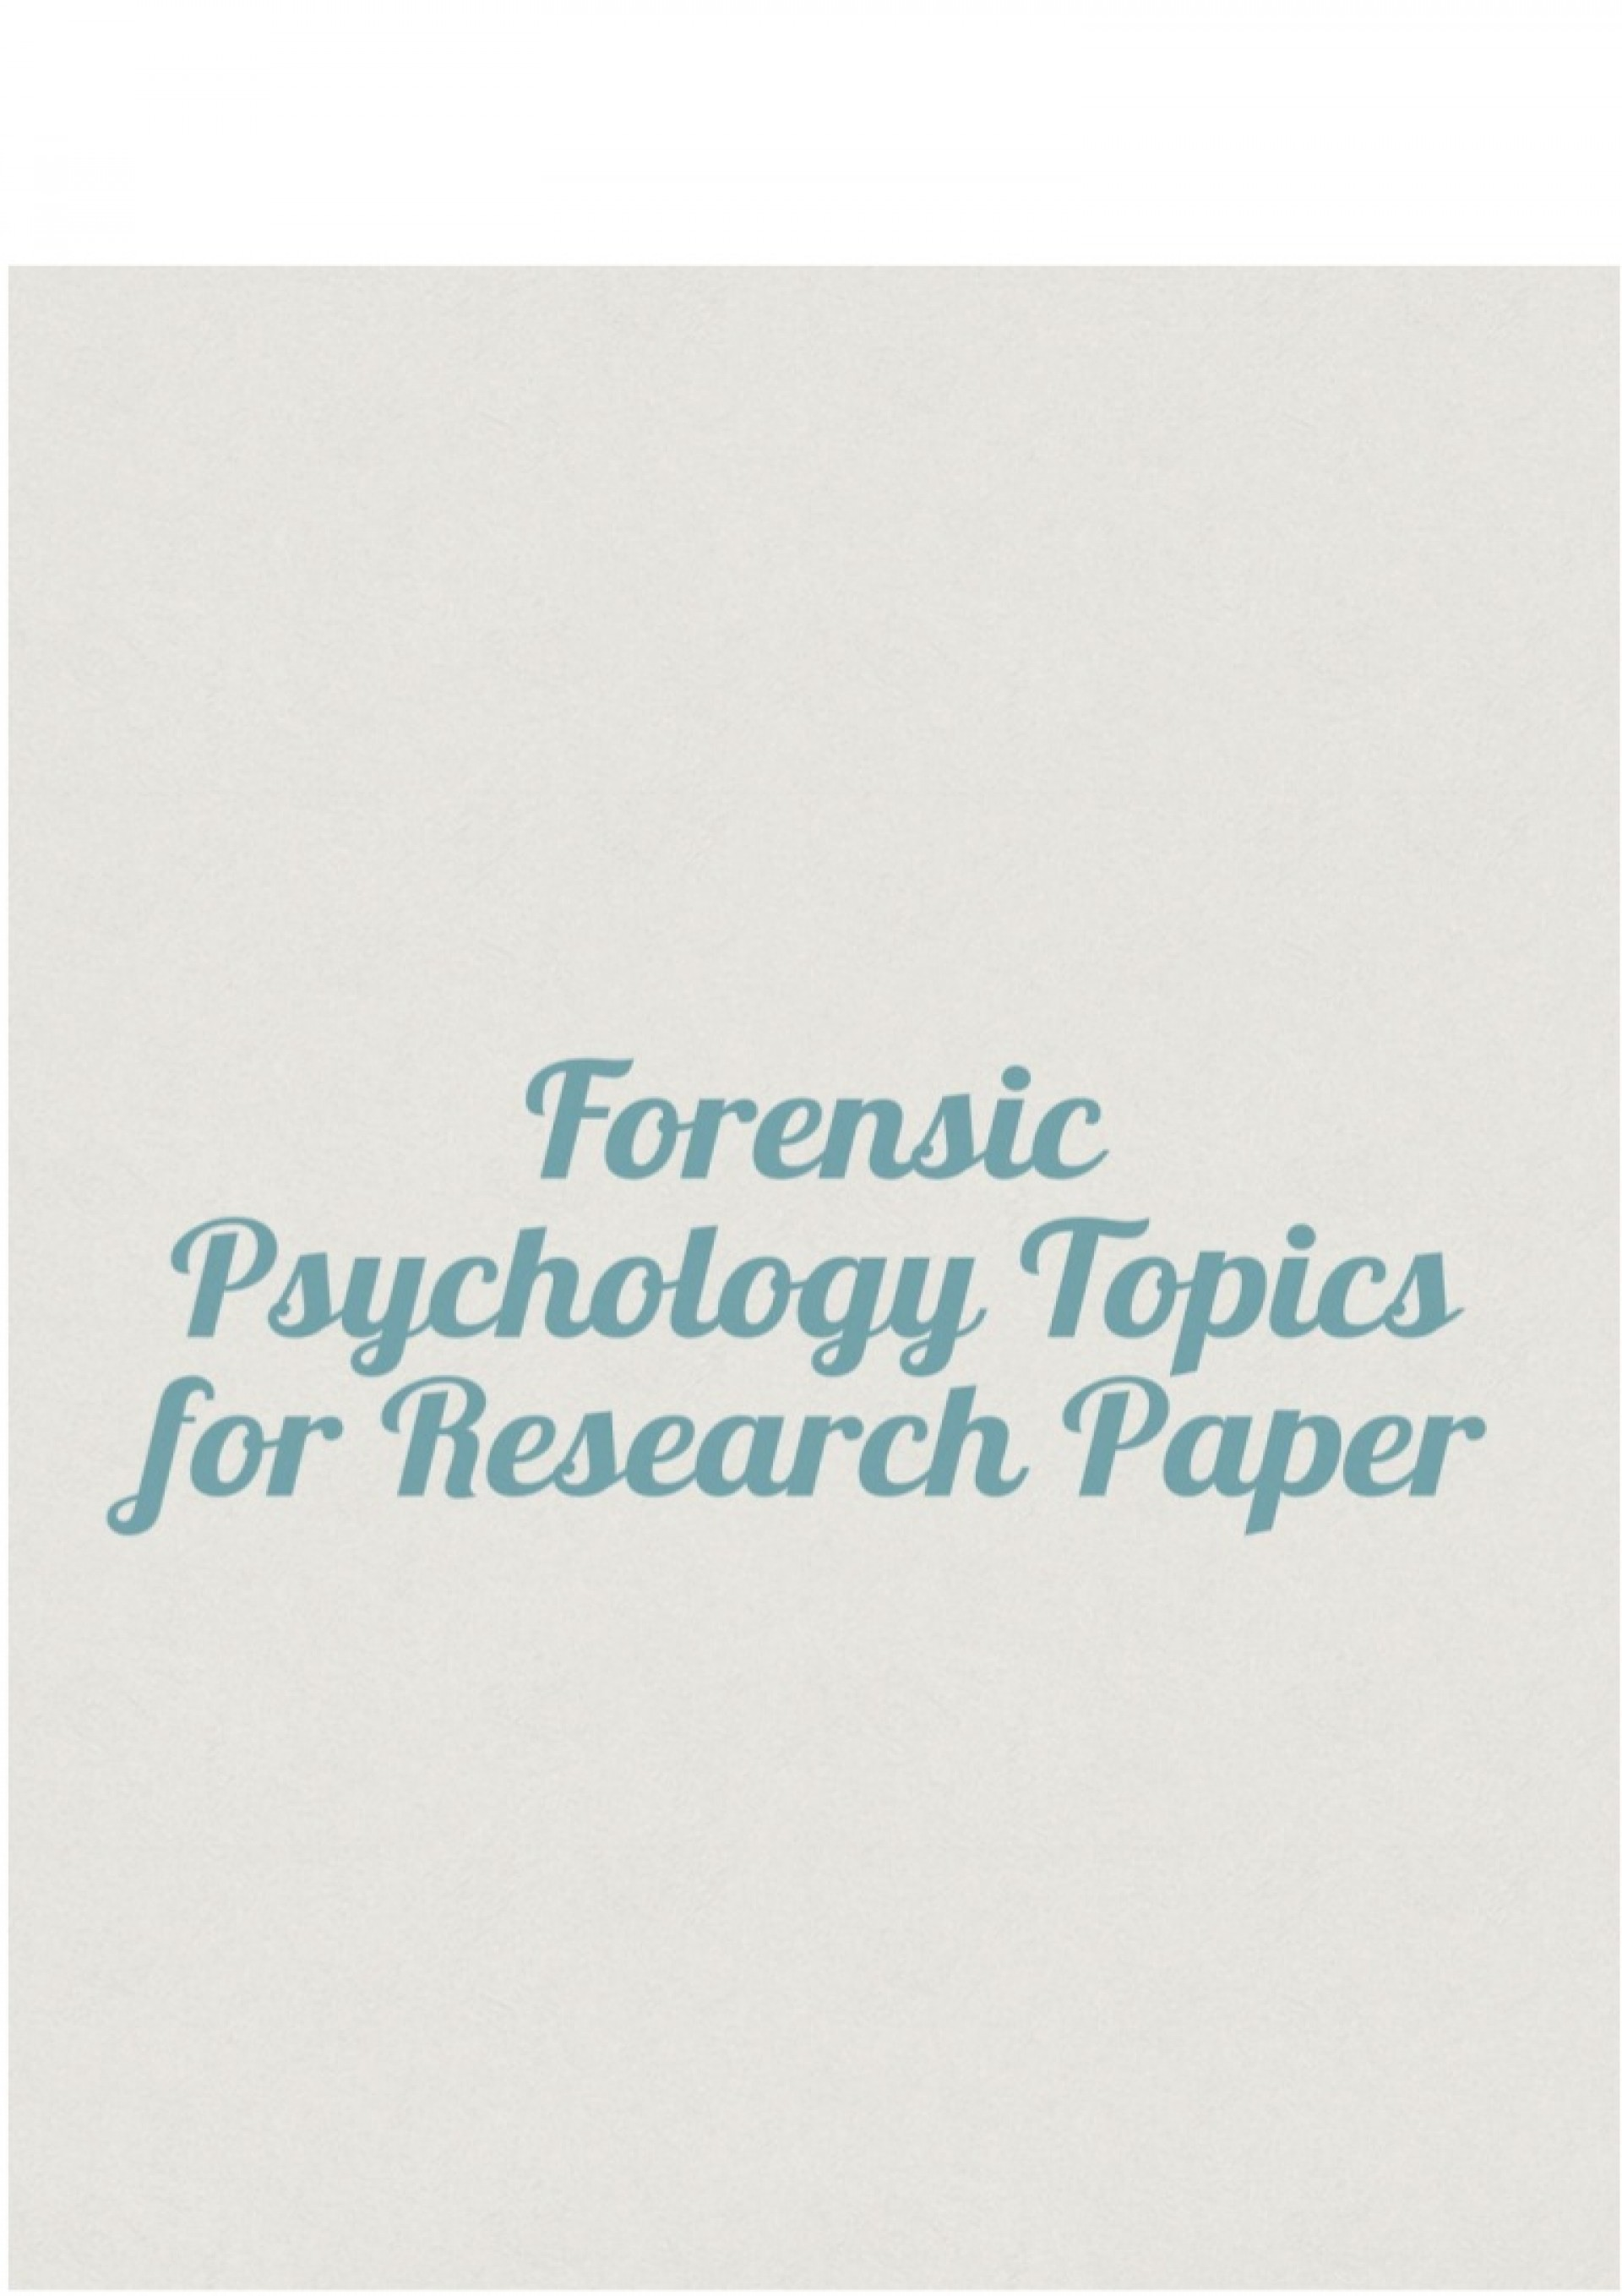 008 Psychology Topics For Research Paper Forensicpsychologytopicsforresearchpaper Thumbnail Wondrous Cultural Cognitive Papers Controversial 1920